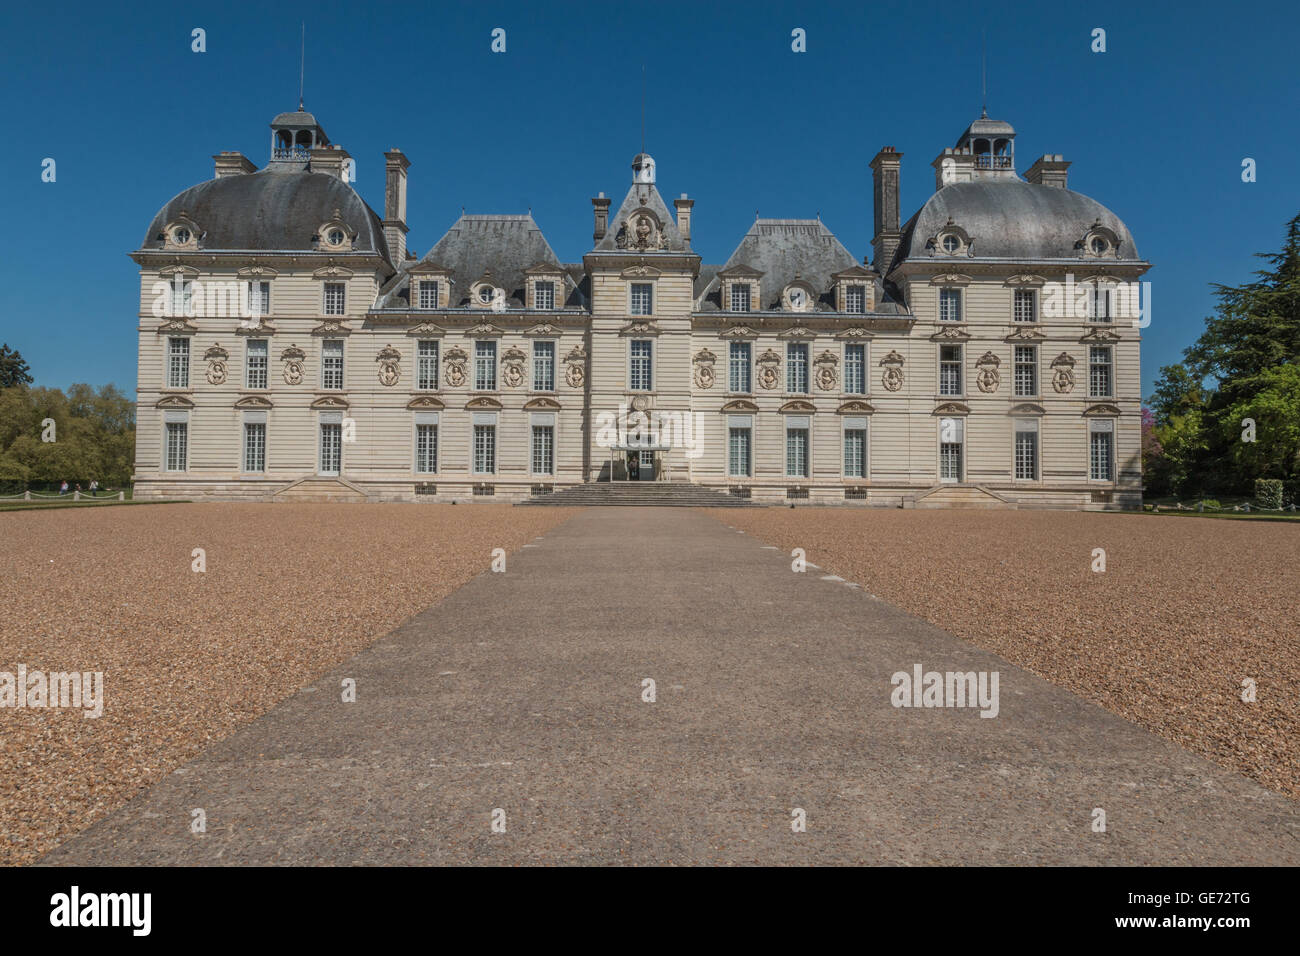 Cheverny Palace in France - Stock Image